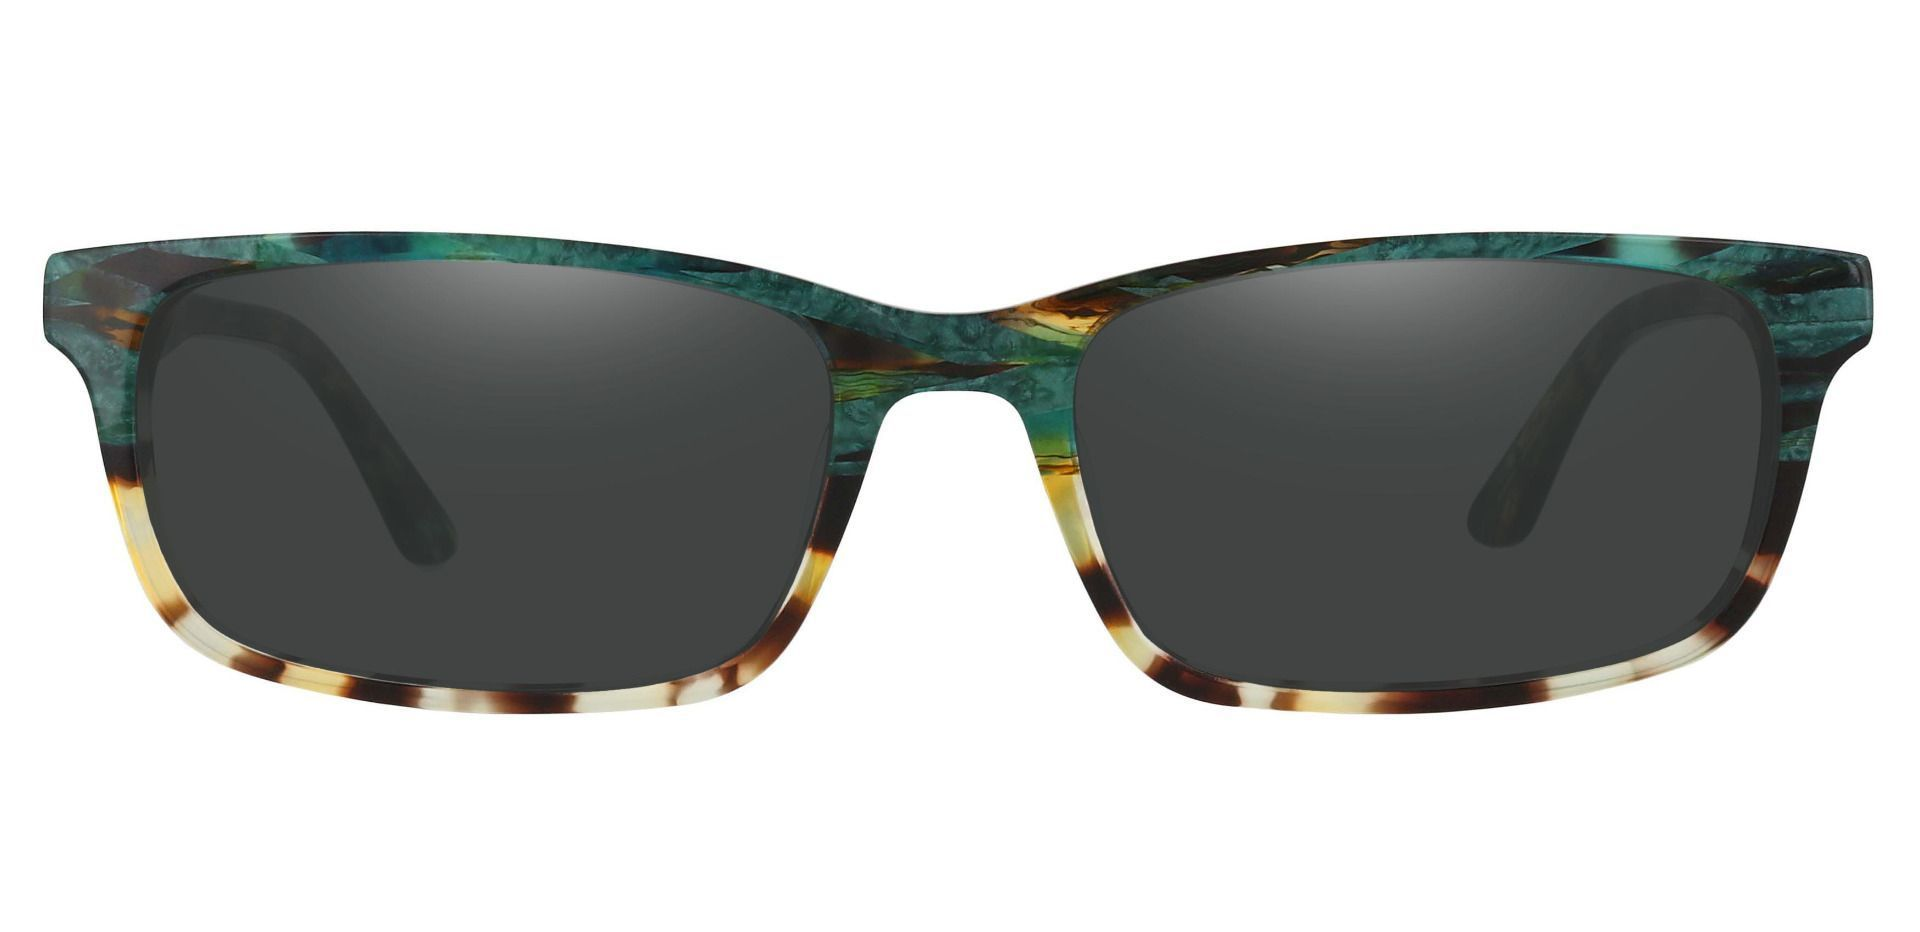 Hendrix Rectangle Lined Bifocal Sunglasses - Floral Frame With Gray Lenses